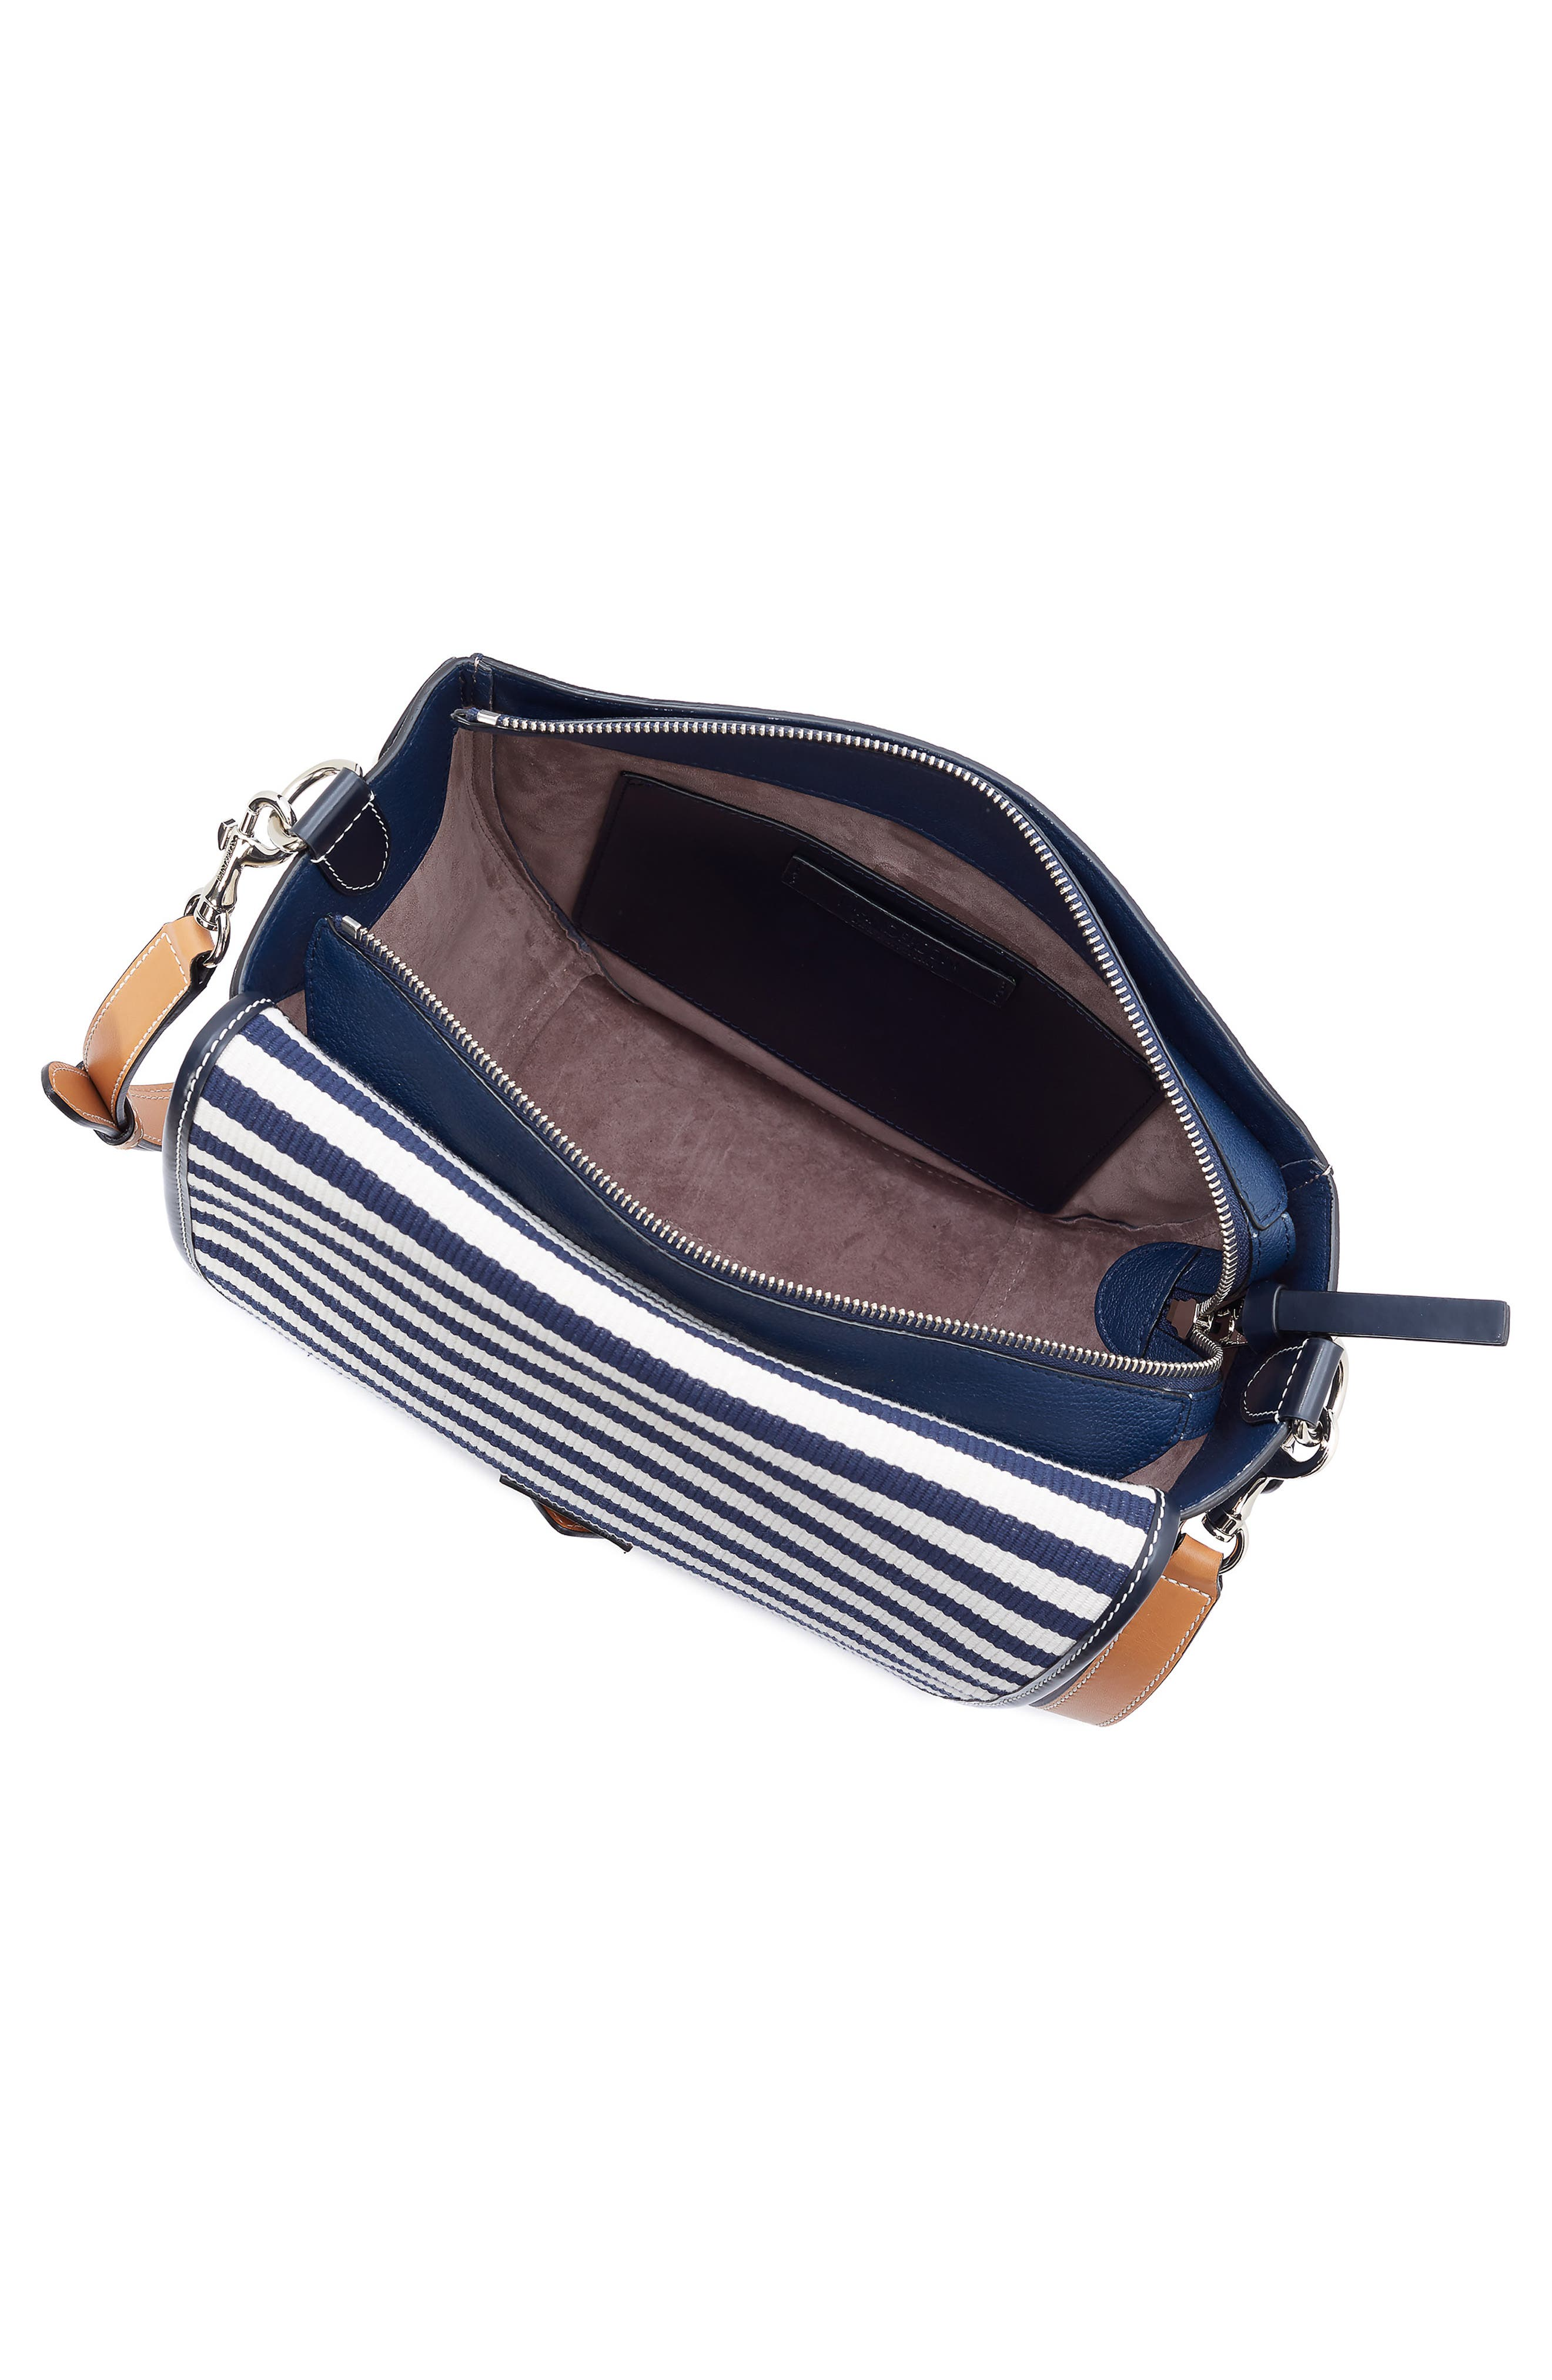 JW ANDERSON,                             Small Bike Leather & Canvas Crossbody Bag,                             Alternate thumbnail 3, color,                             NAVY BRETON